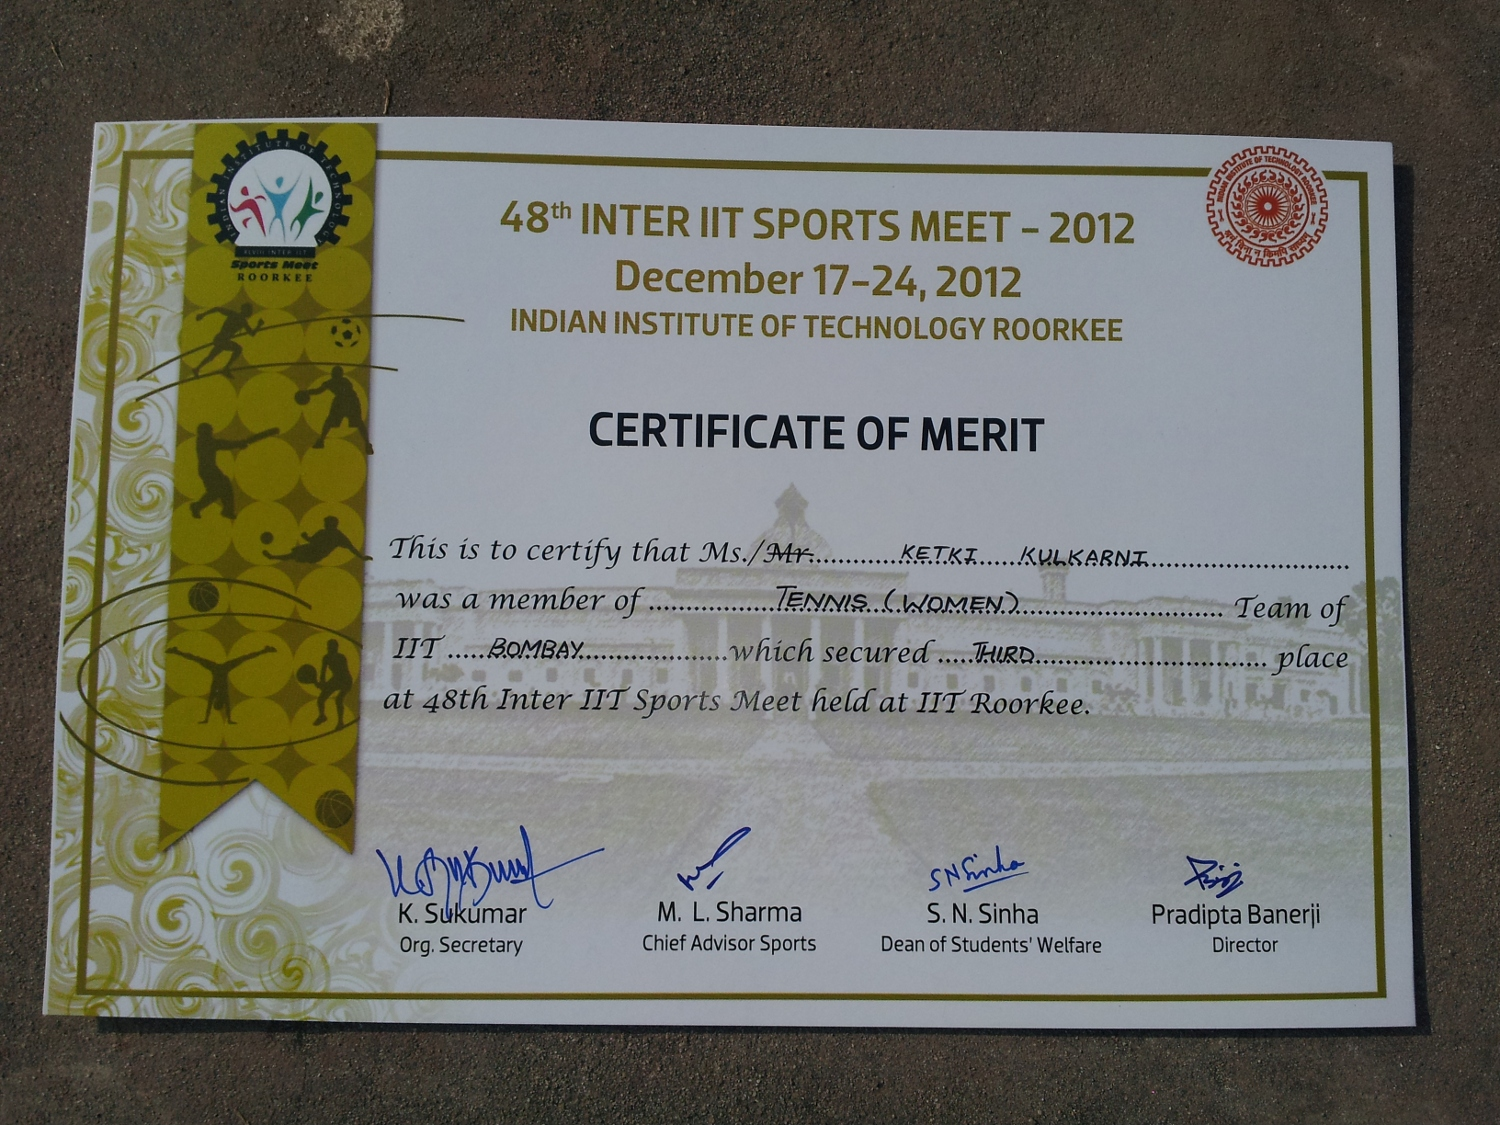 inter iit sports meet 2012 roorkee schedule